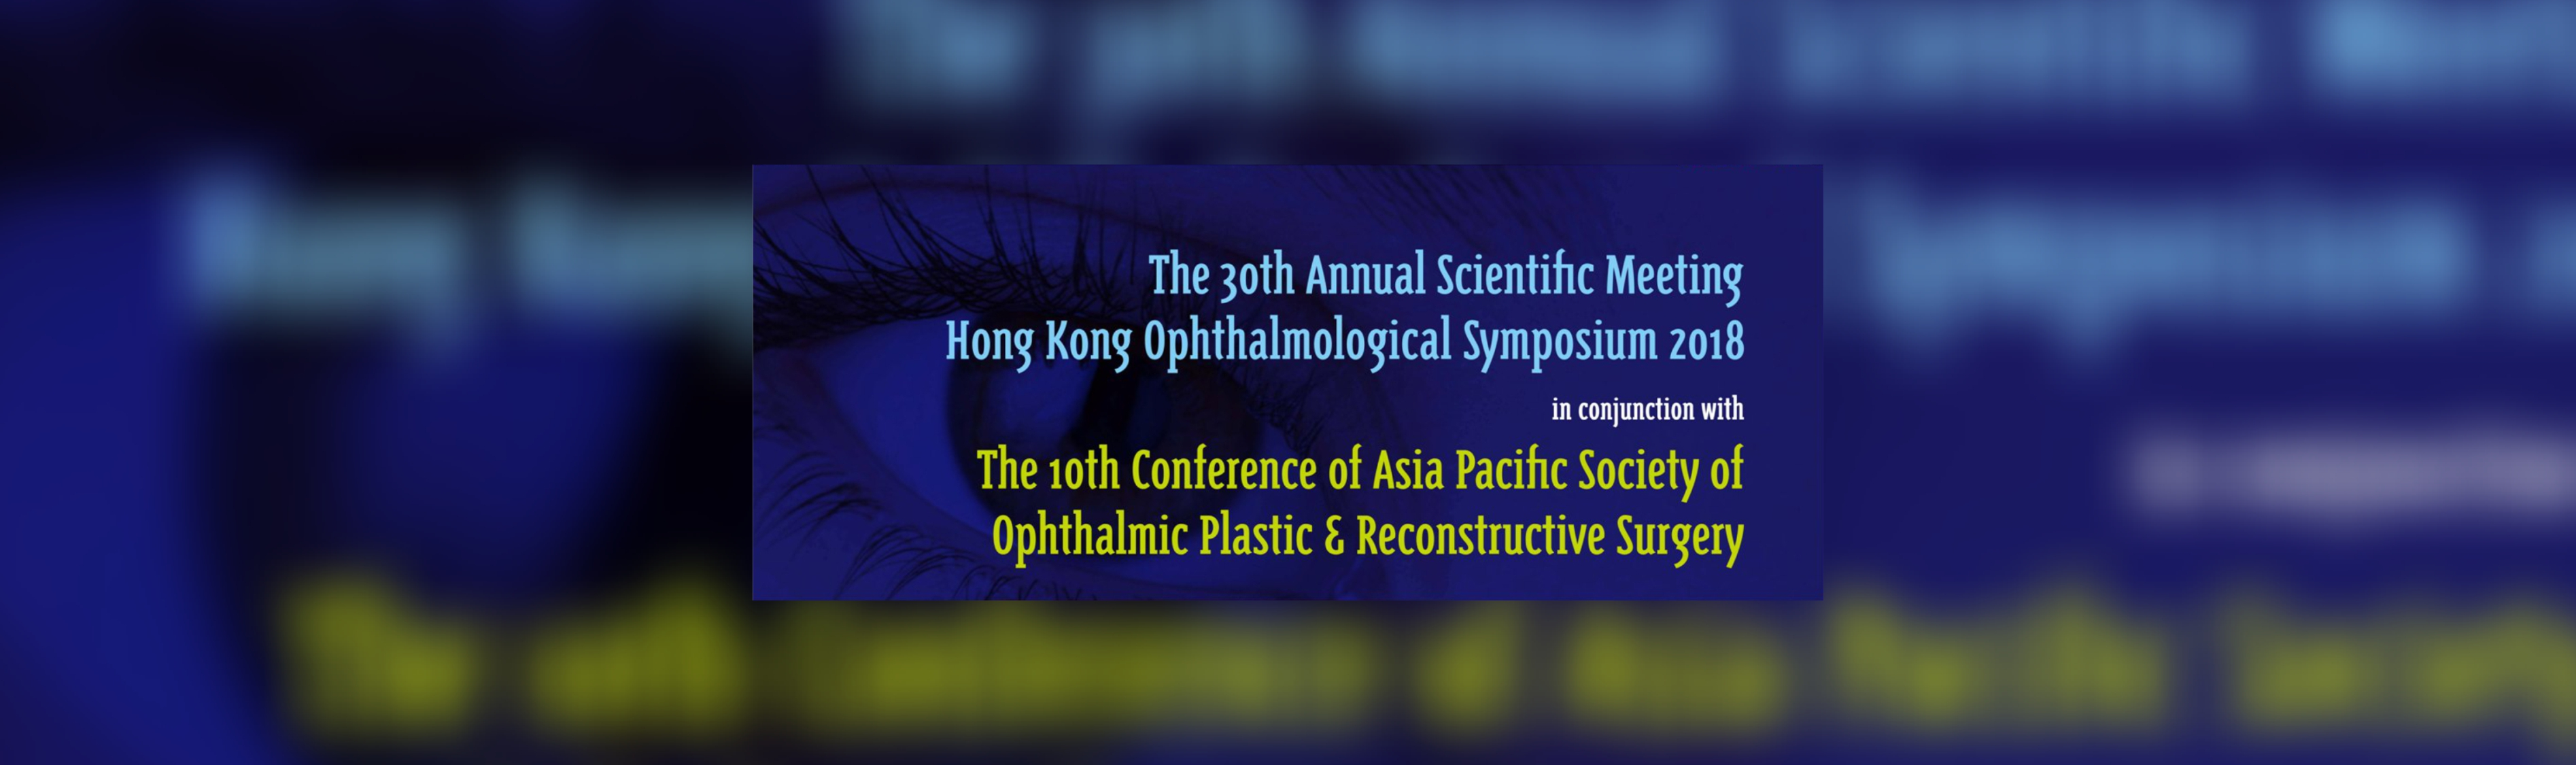 10th Biennial Meeting of the Asia-Pacific Society of Ophthalmic Plastic and Reconstructive Surgery (